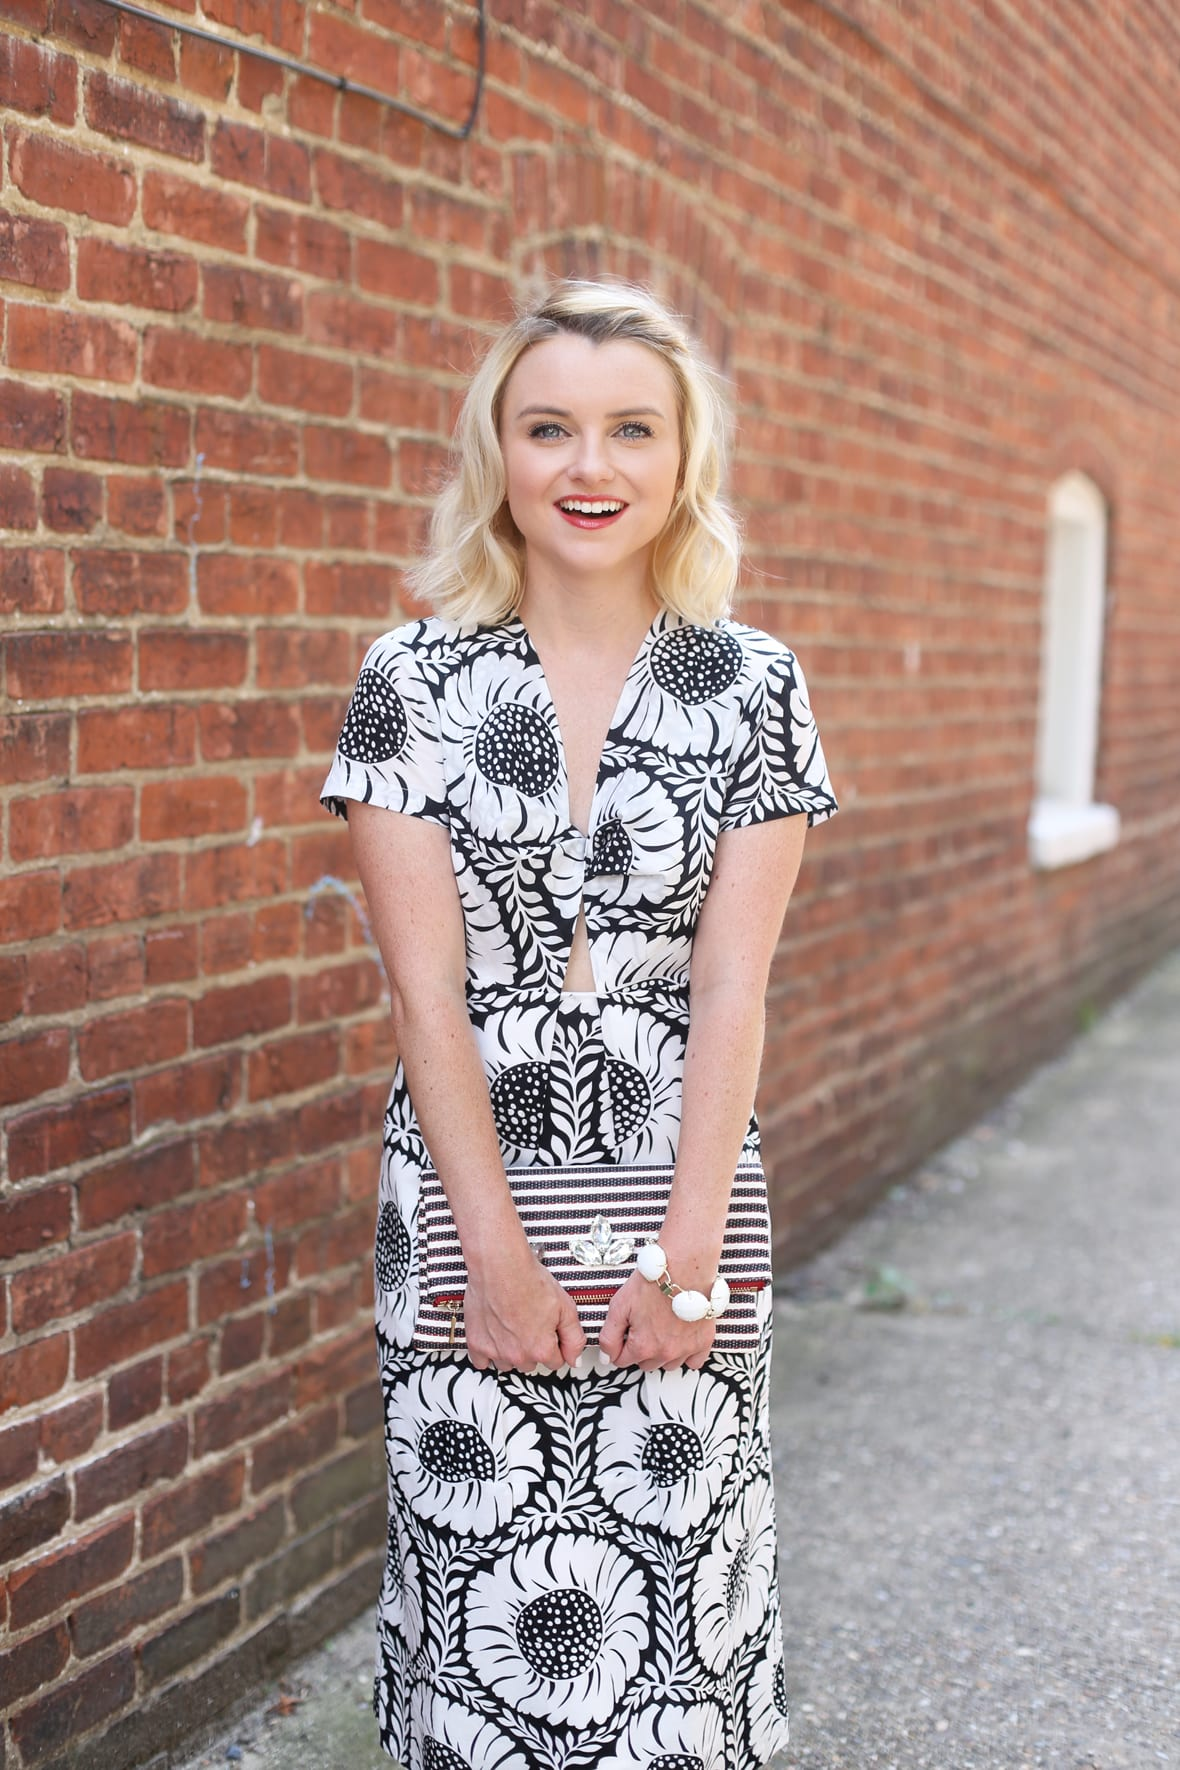 Black and White Printed Cut Out Midi Dress on Poor Little It Girl - @poorlilitgirl